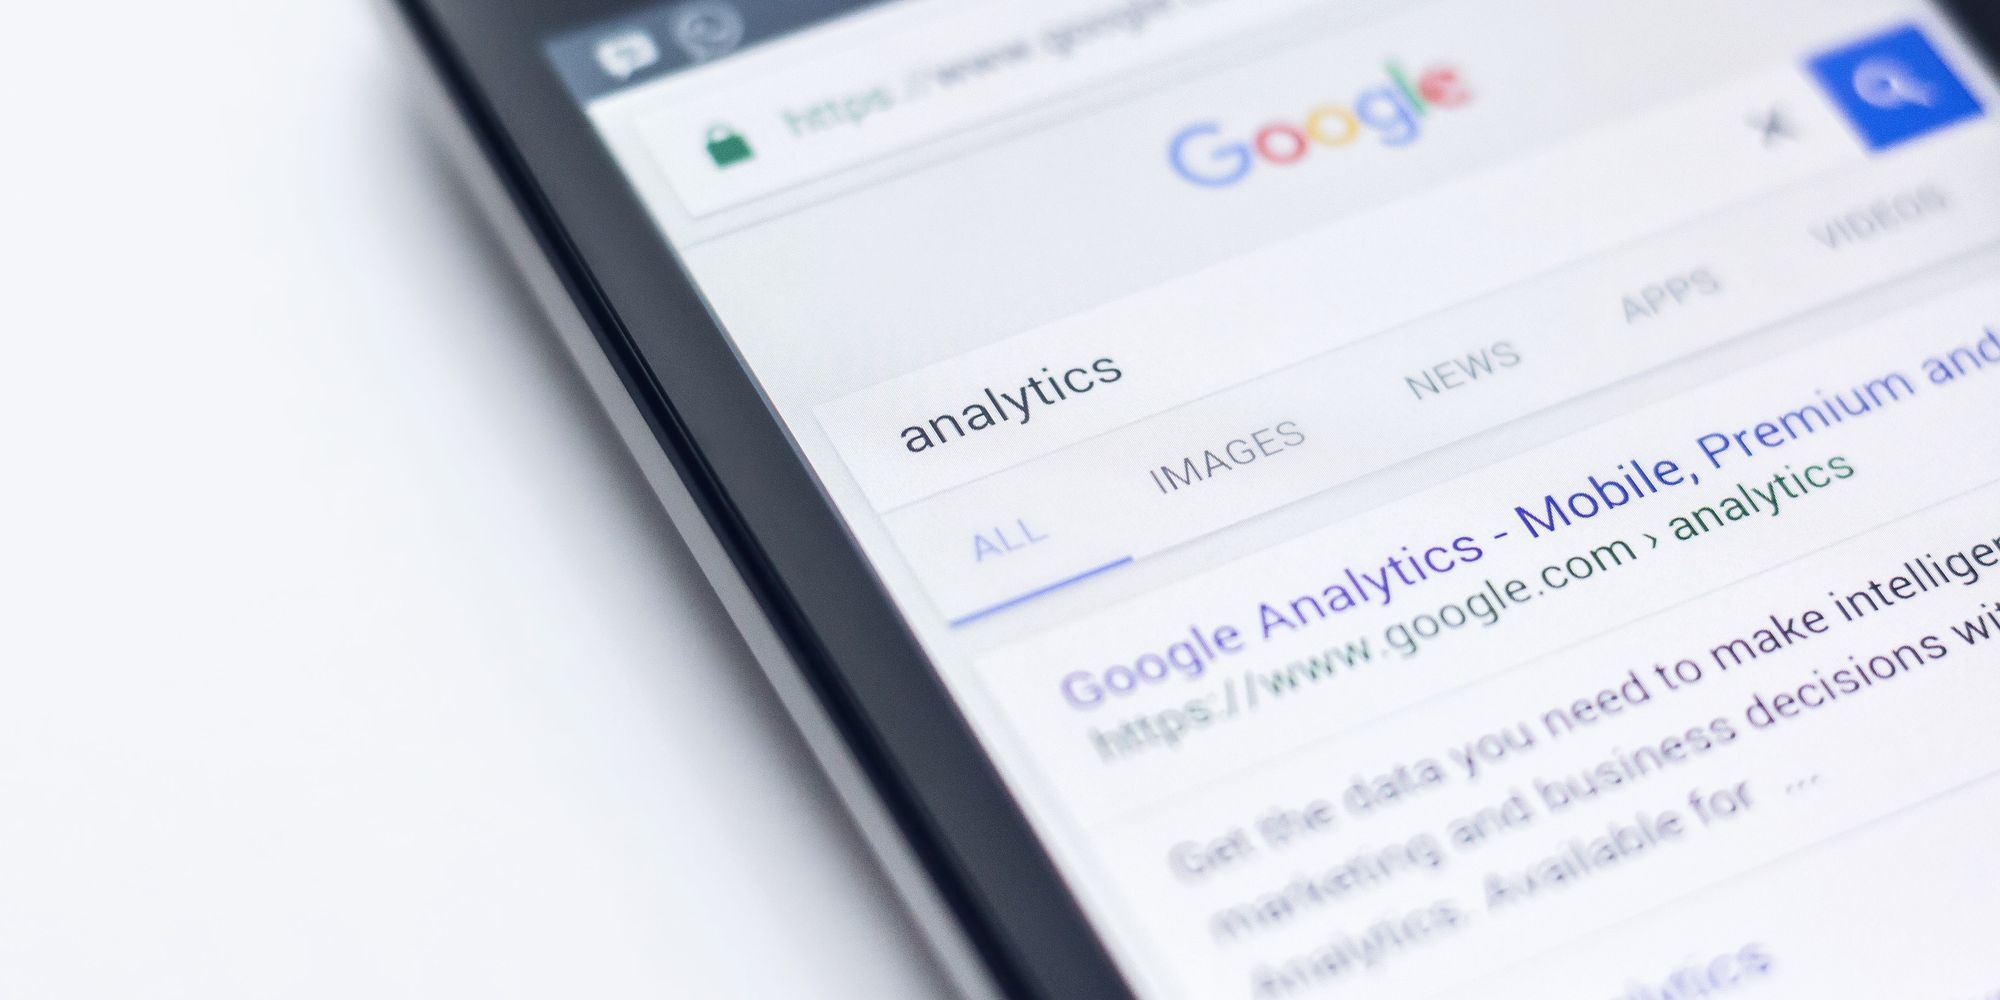 Cover Image for Analyse website and campaign performance with Google Analytics